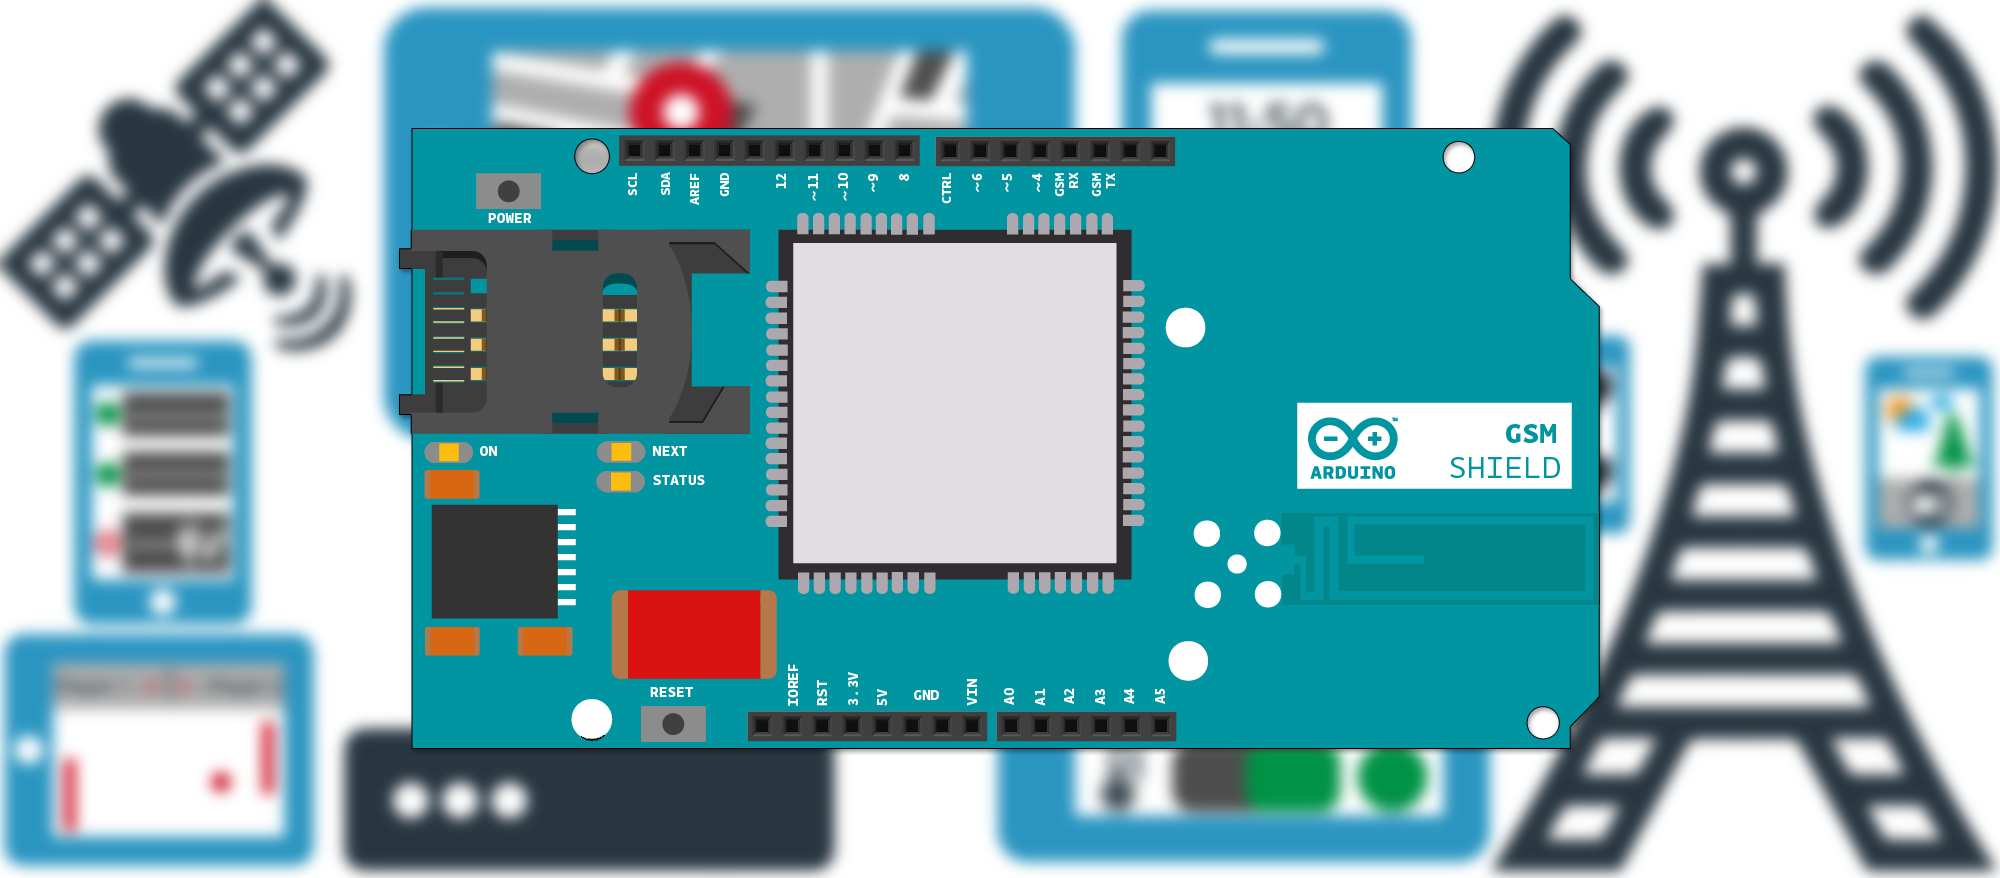 Connecting Arduino Beyond WiFi on a Mobile Cellular Network